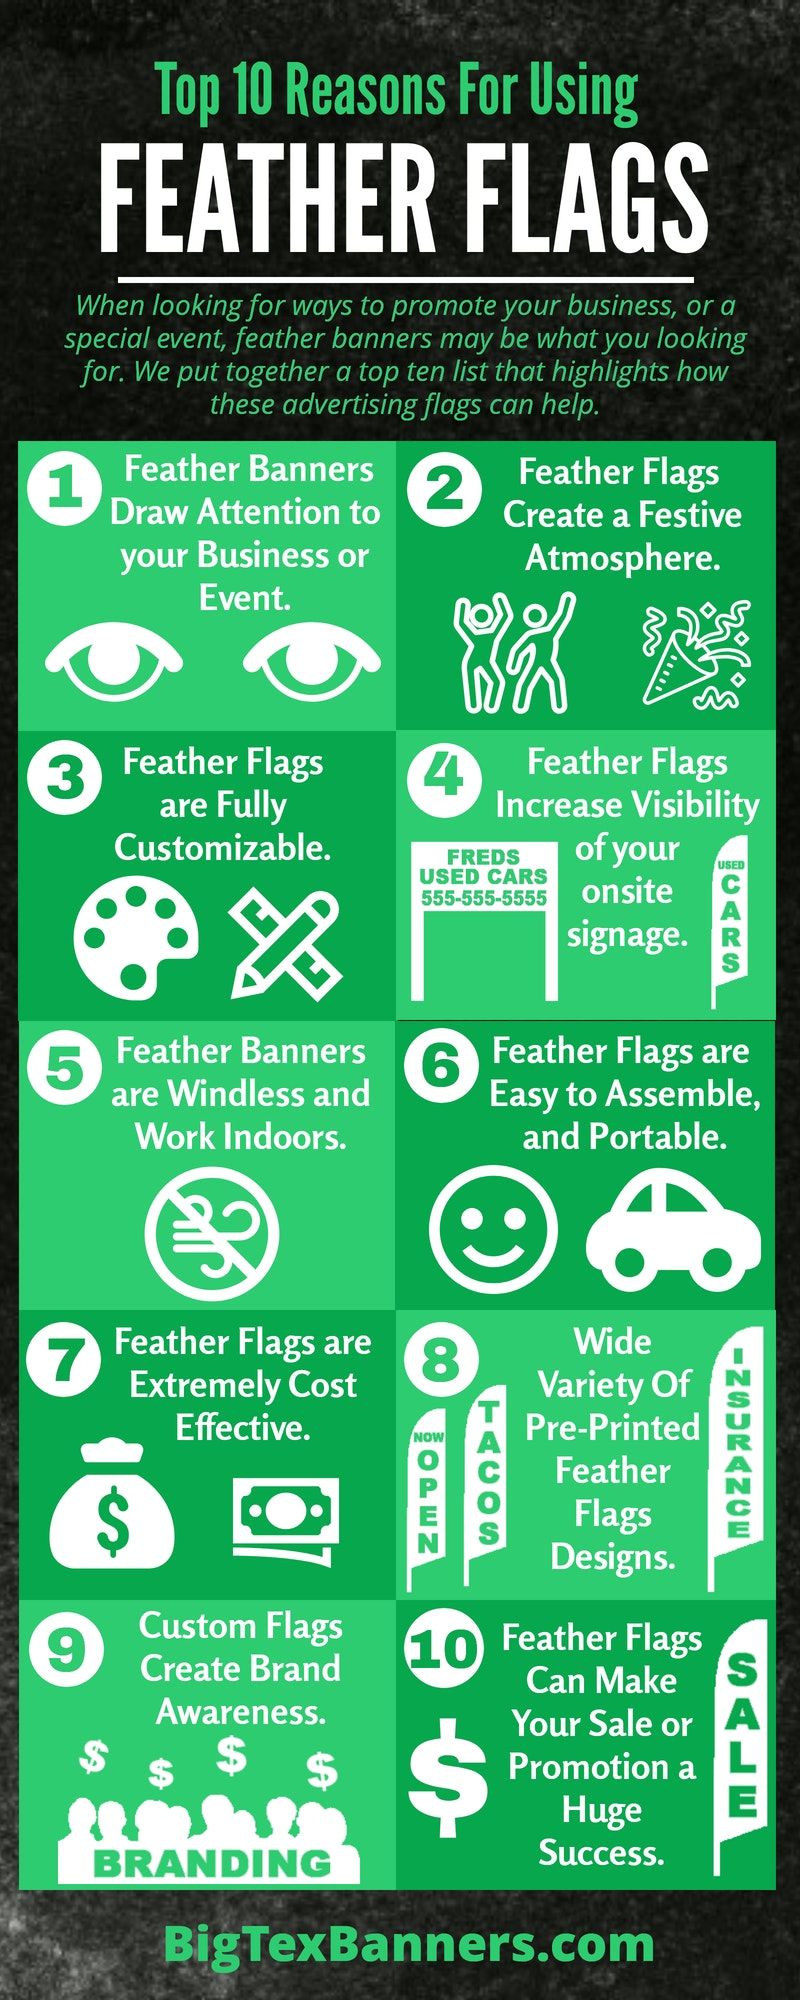 10-feather-flag-reasons-infographic